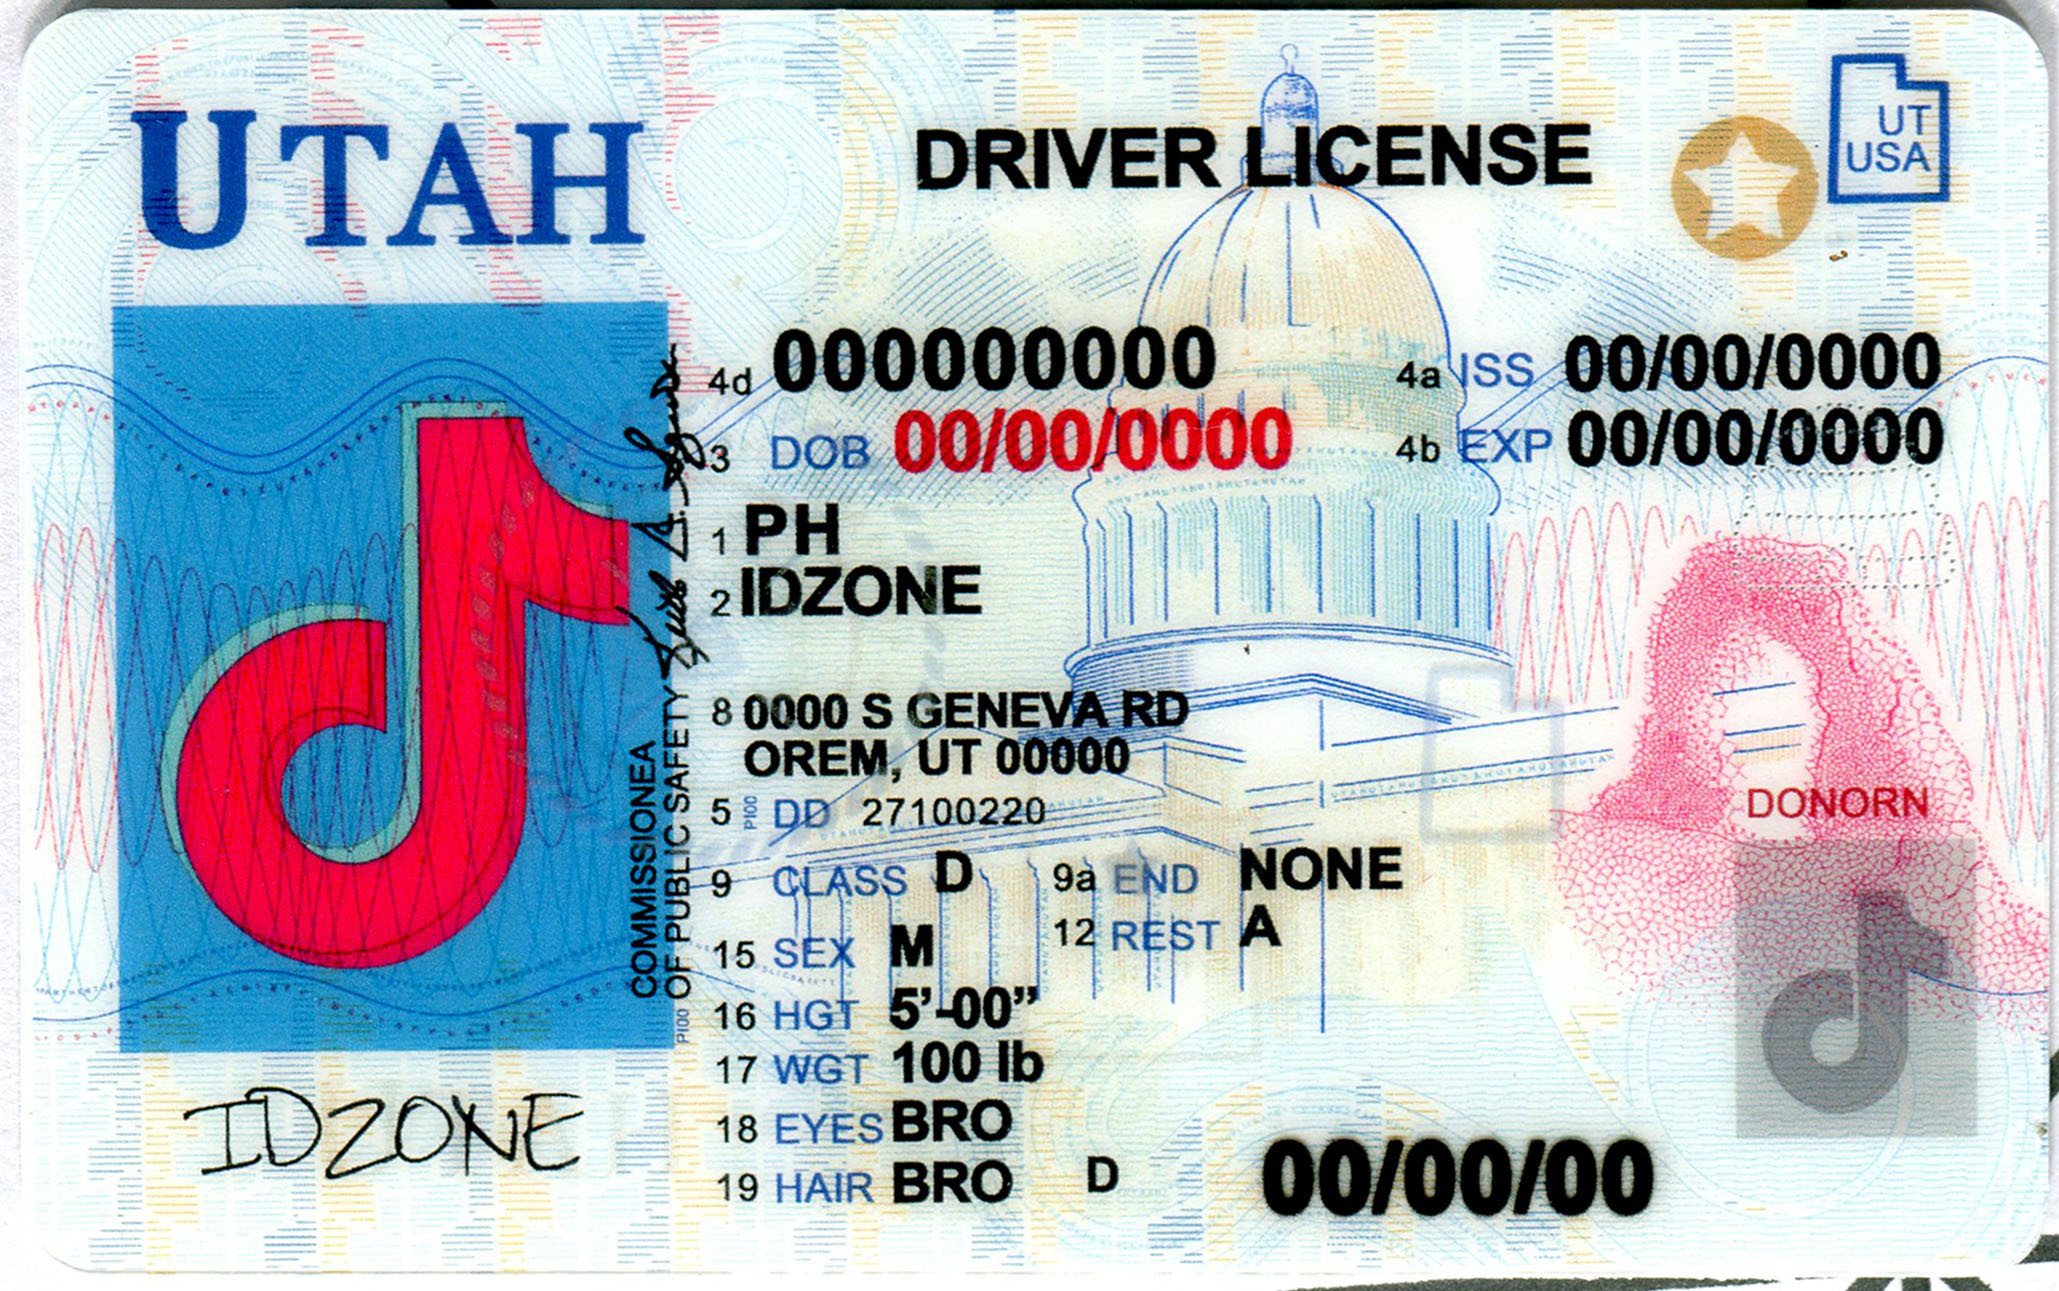 UTAH-New Scannable fake id